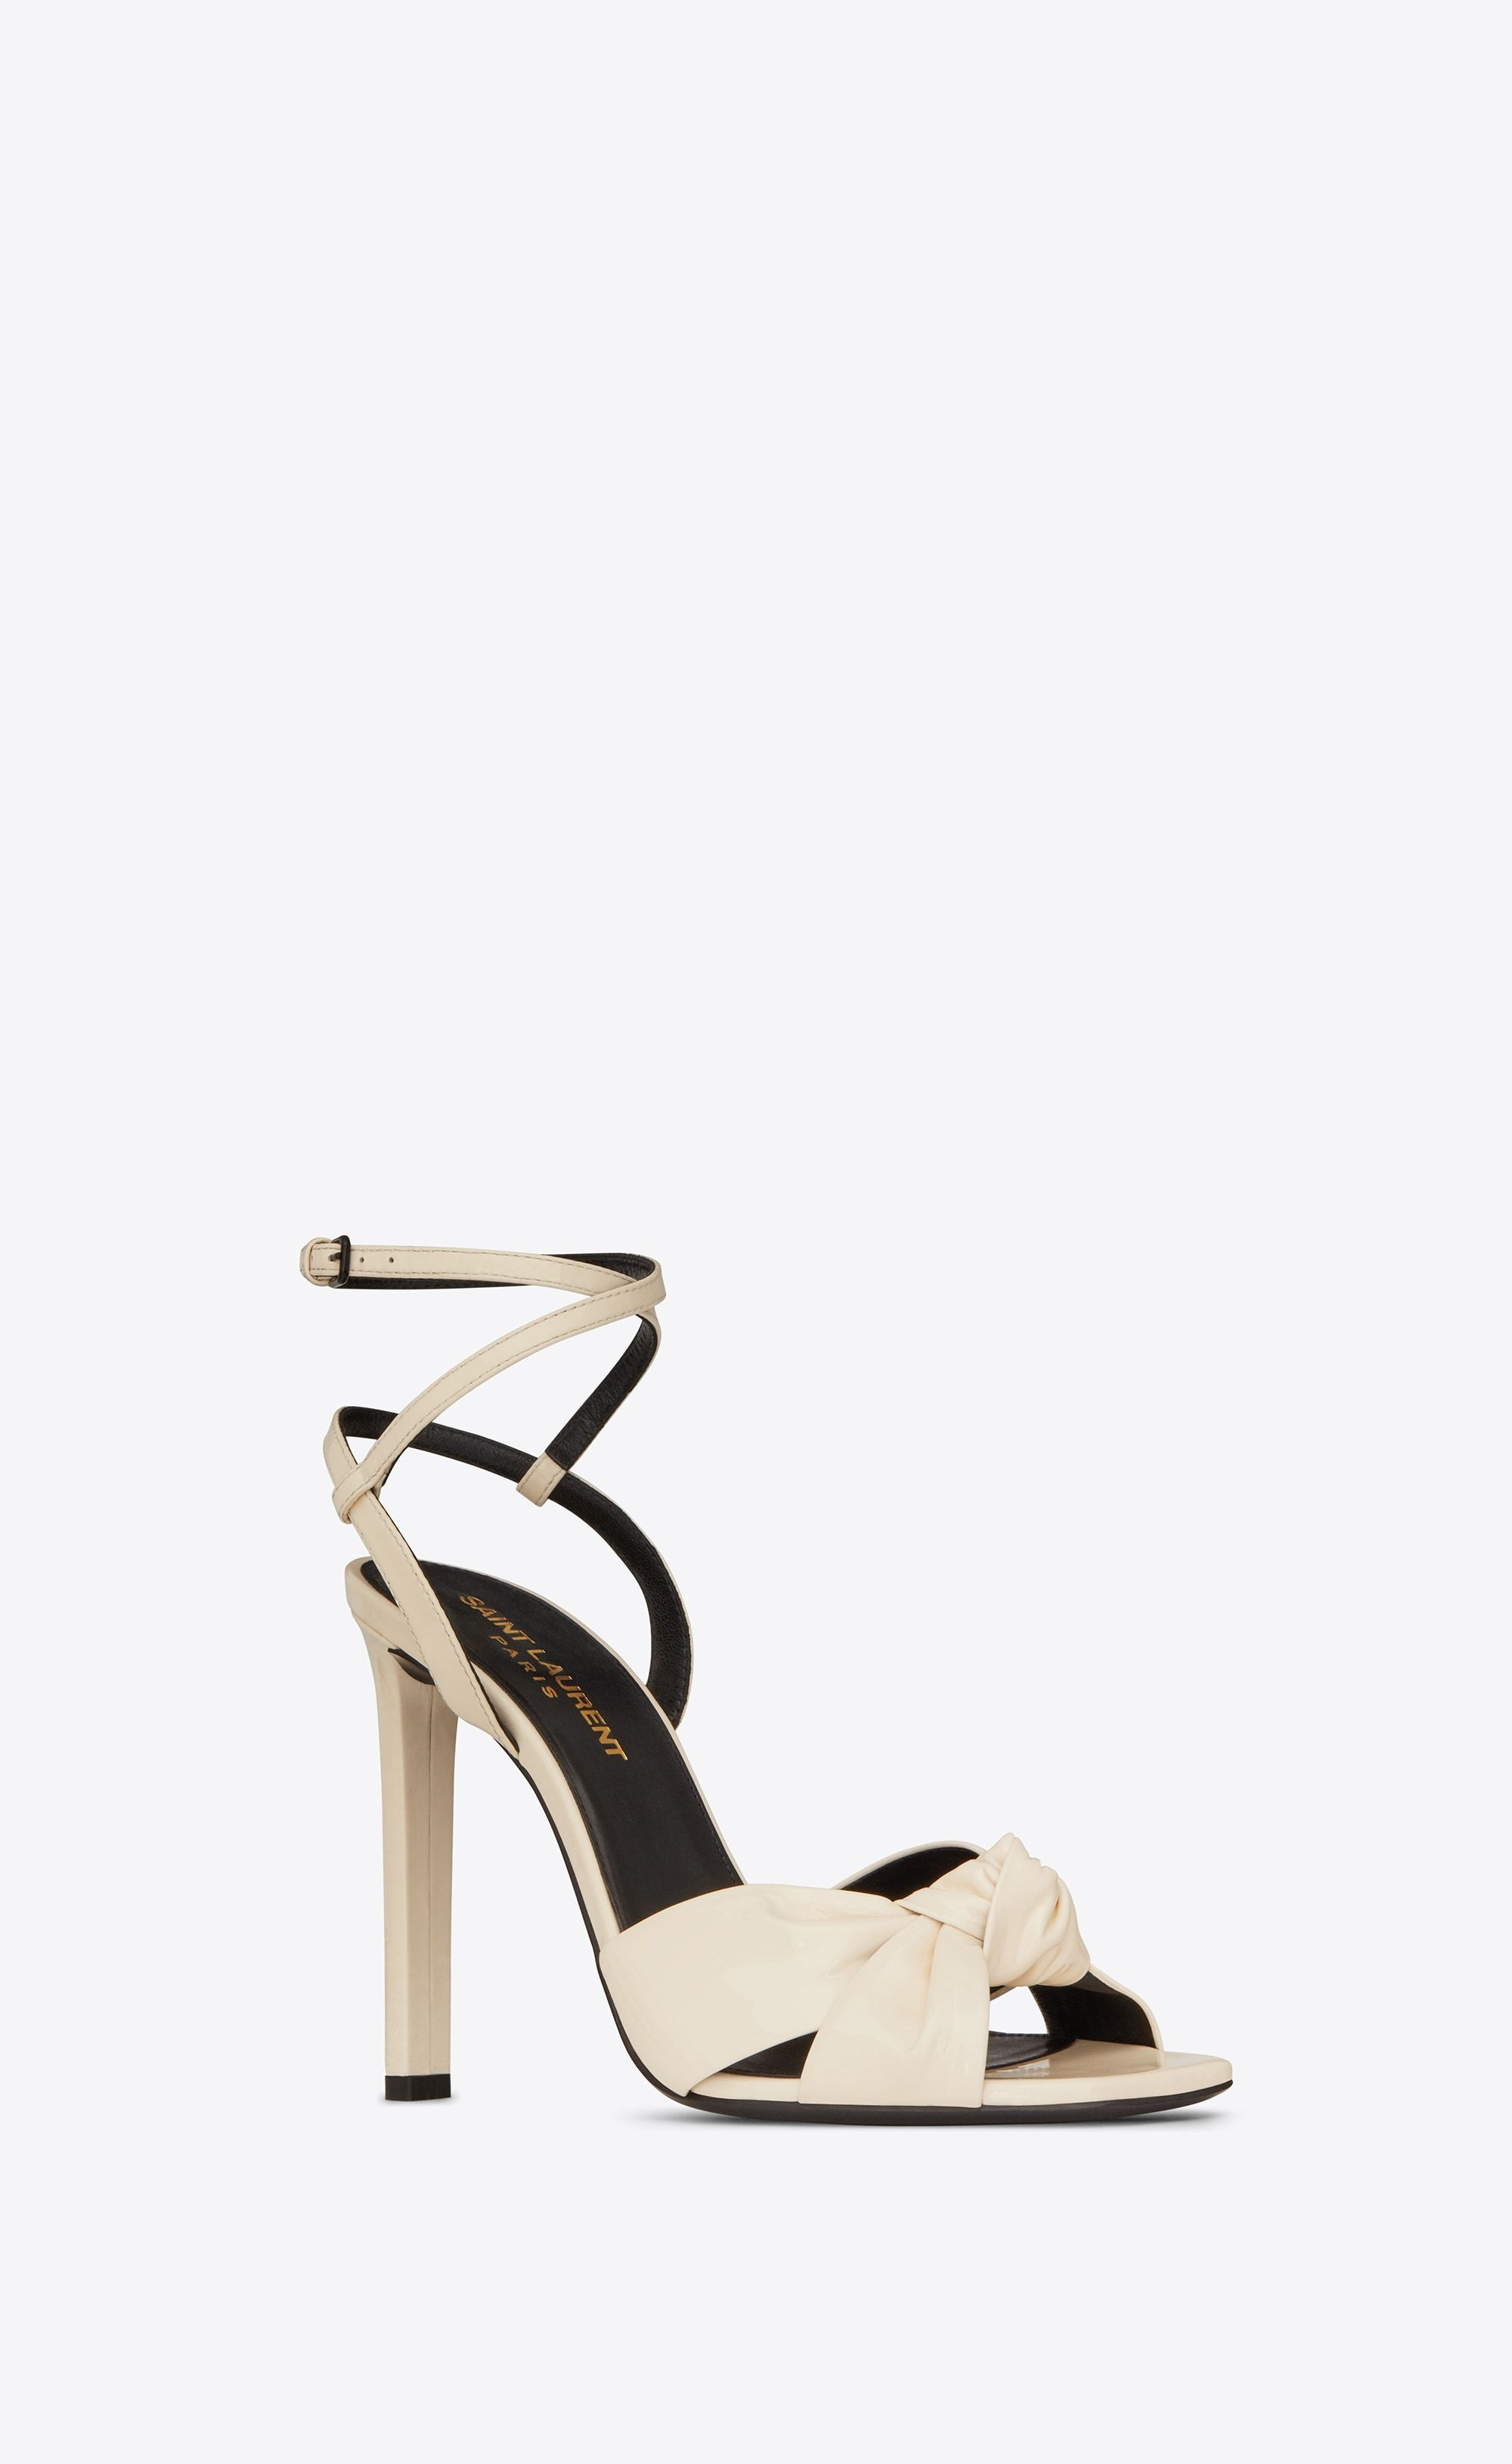 bd439e72e6db Saint Laurent - Amy sandal in patent porcelain leather ( 895 ...